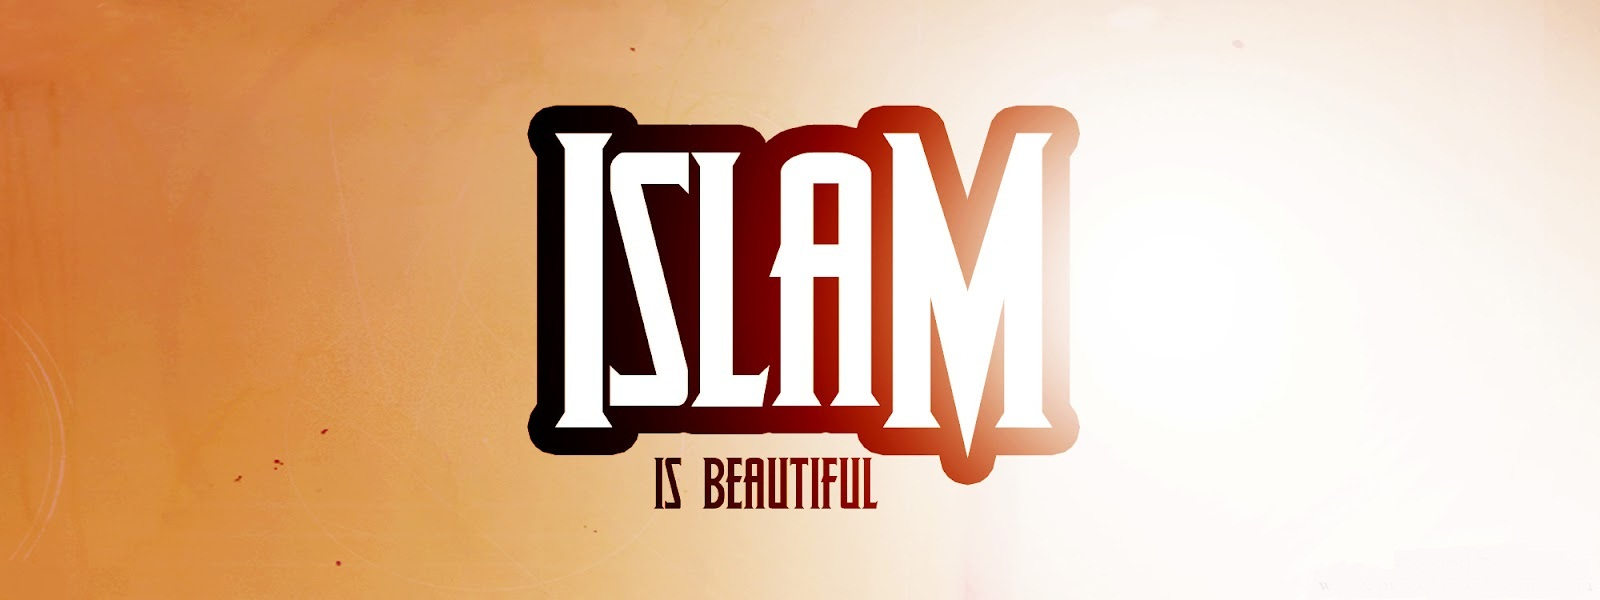 Islamic-Facebook-Timeline-Profile-Covers-5